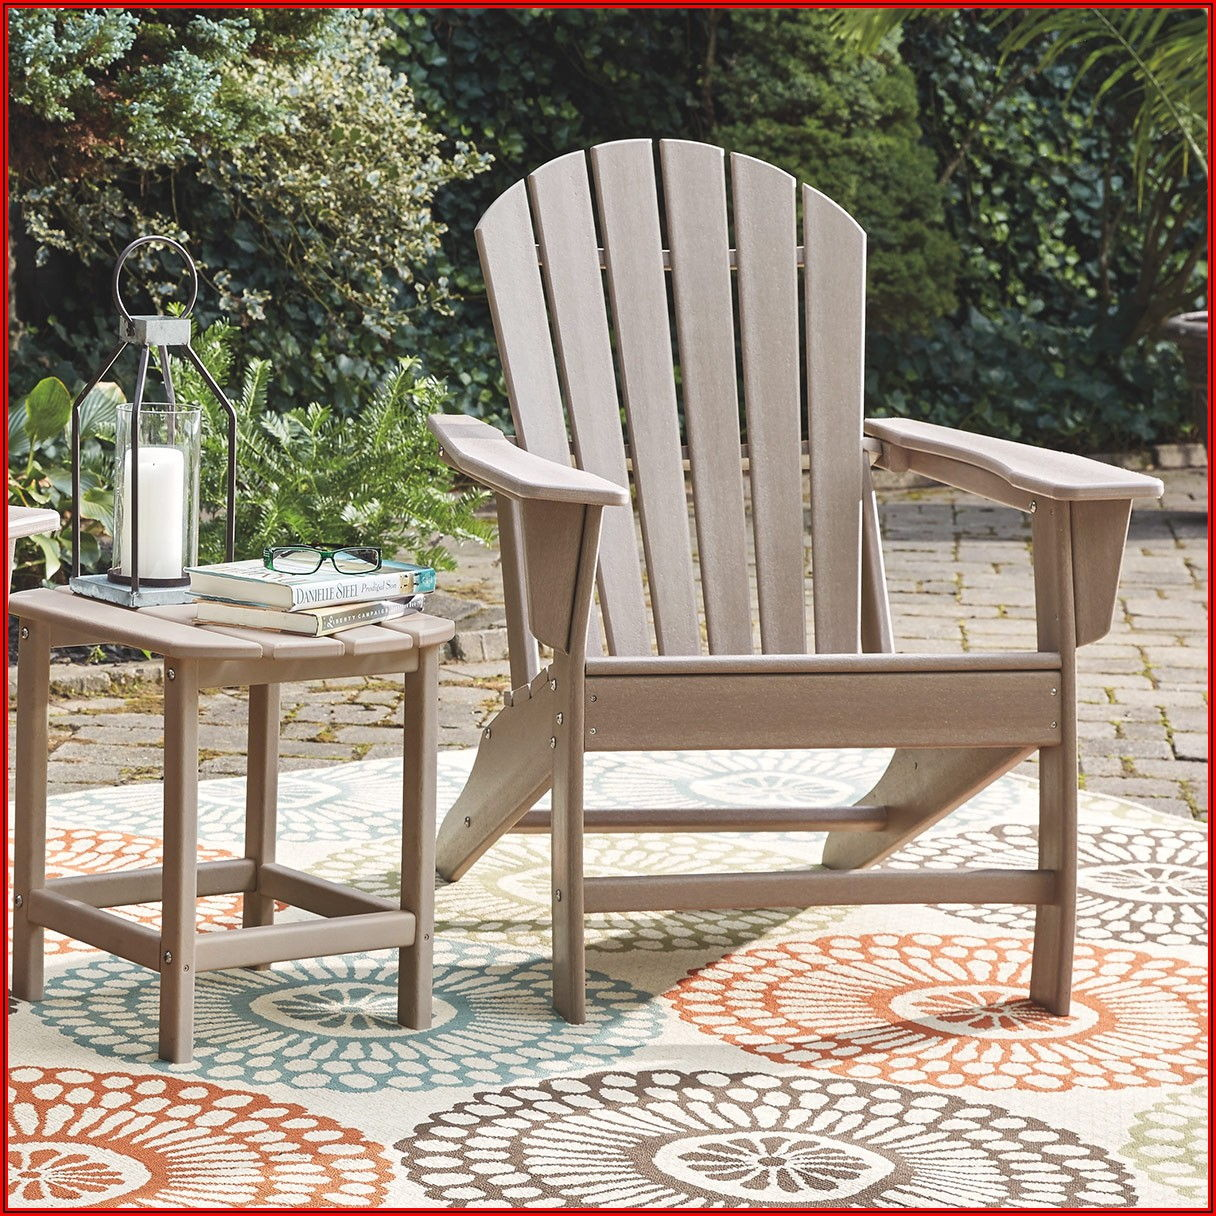 Ashley Furniture Outdoor Patio Chairs